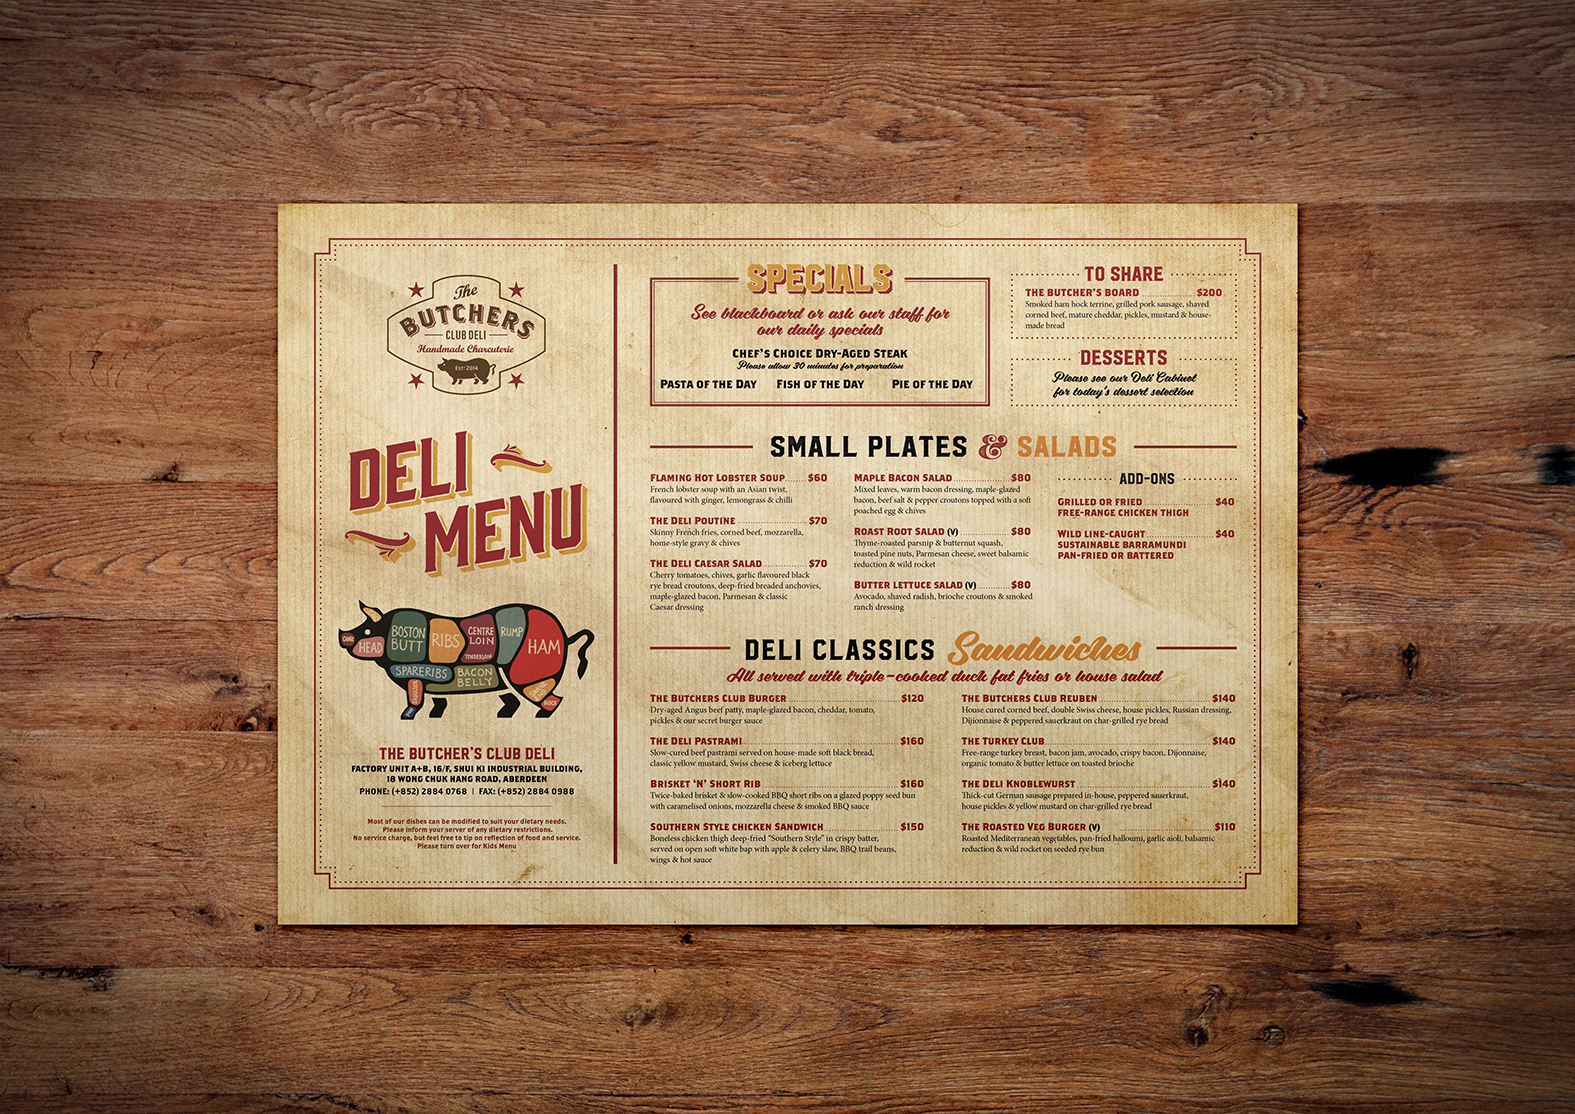 TBC-Photos-Menus2.jpg